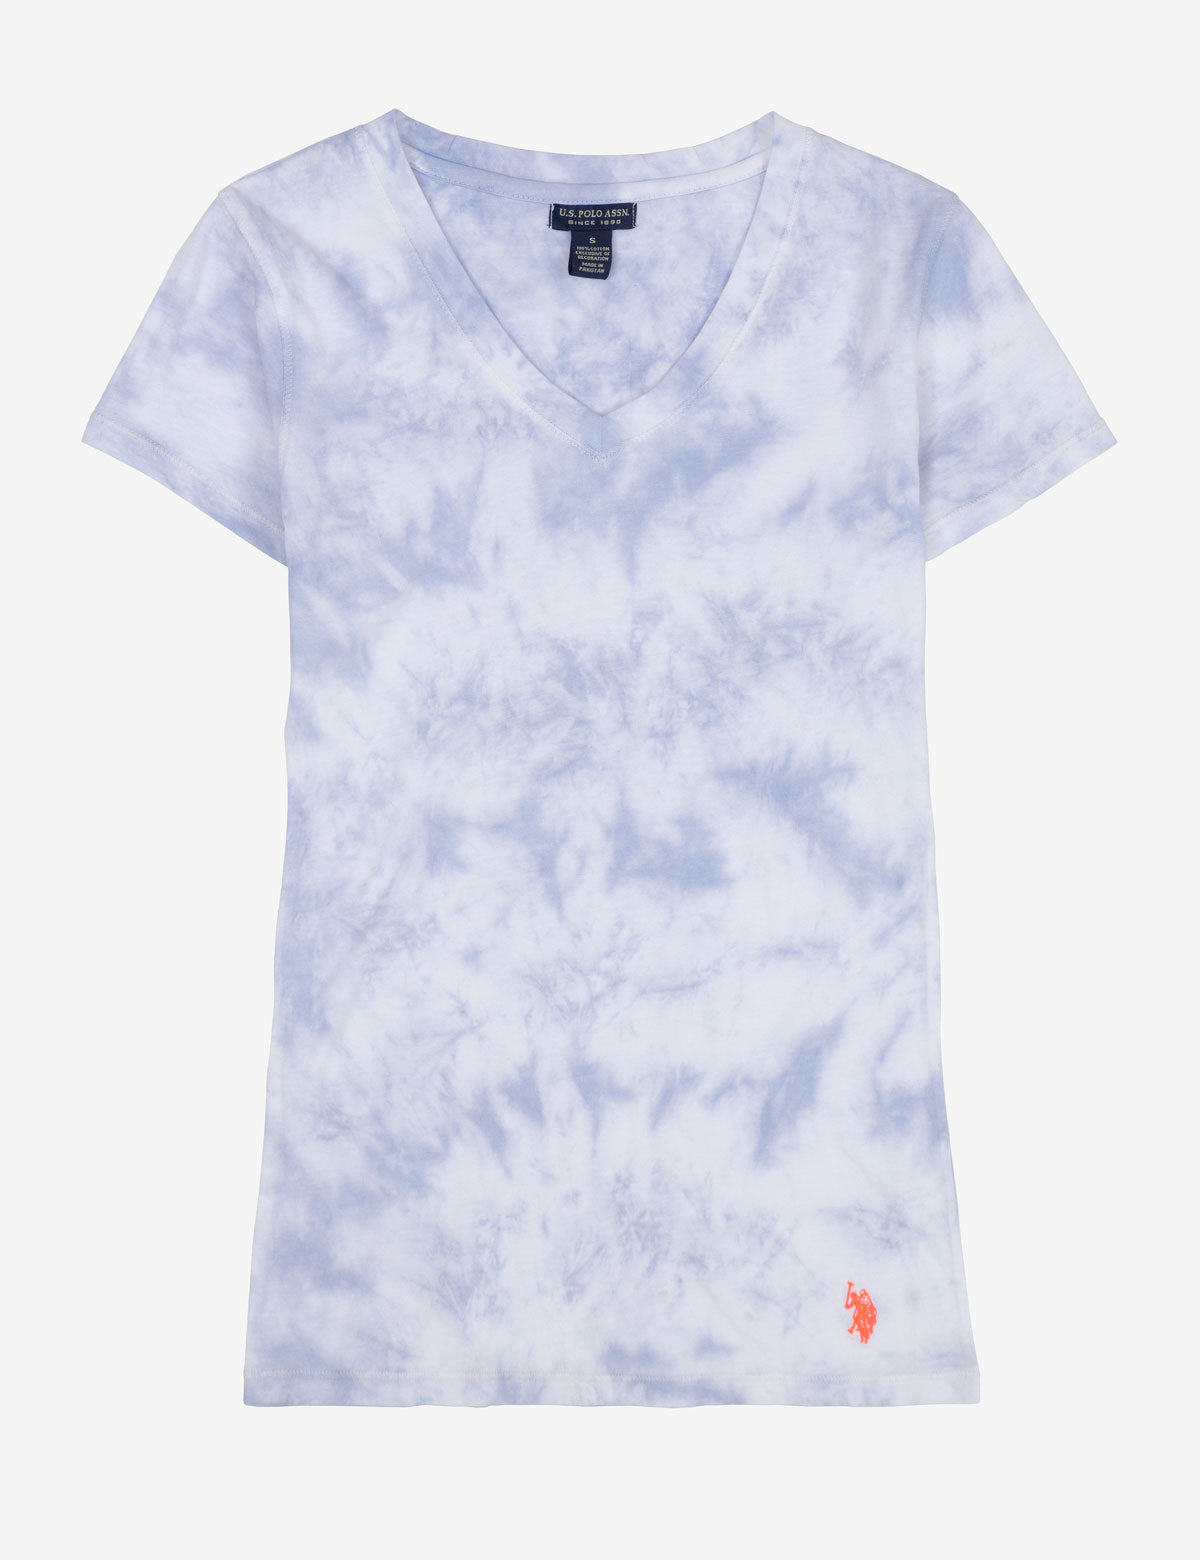 TIE DYE V-NECK T-SHIRT - U.S. Polo Assn.